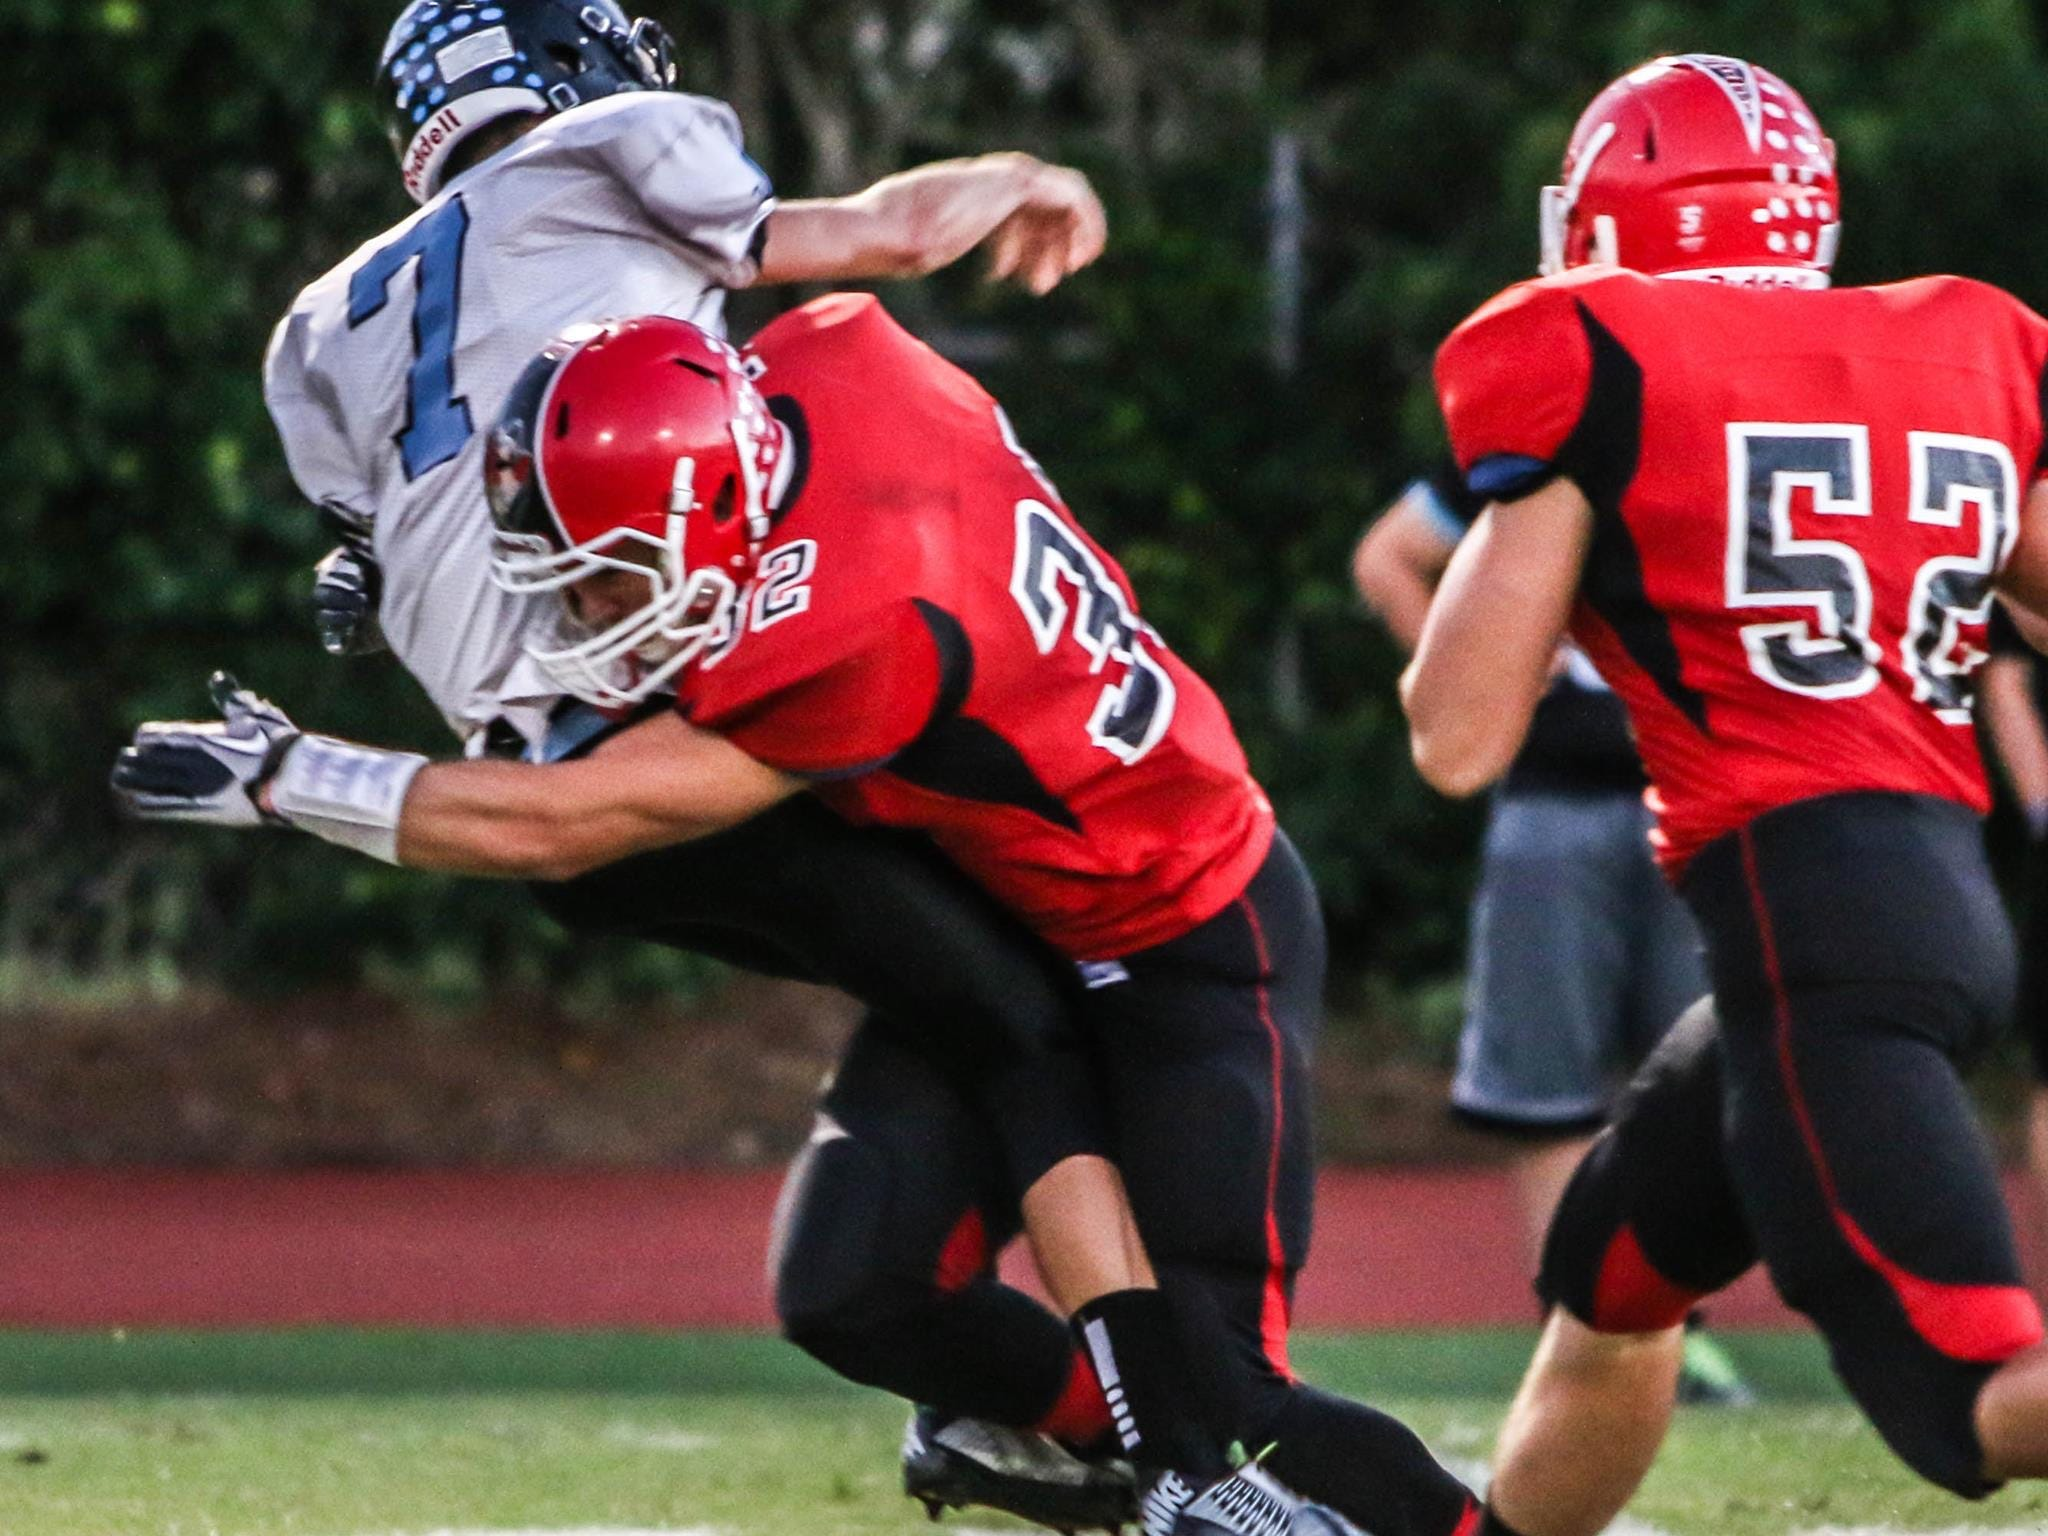 Evangelical Christian School senior linebacker Carson Pearlman makes a tackle in a game last fall.